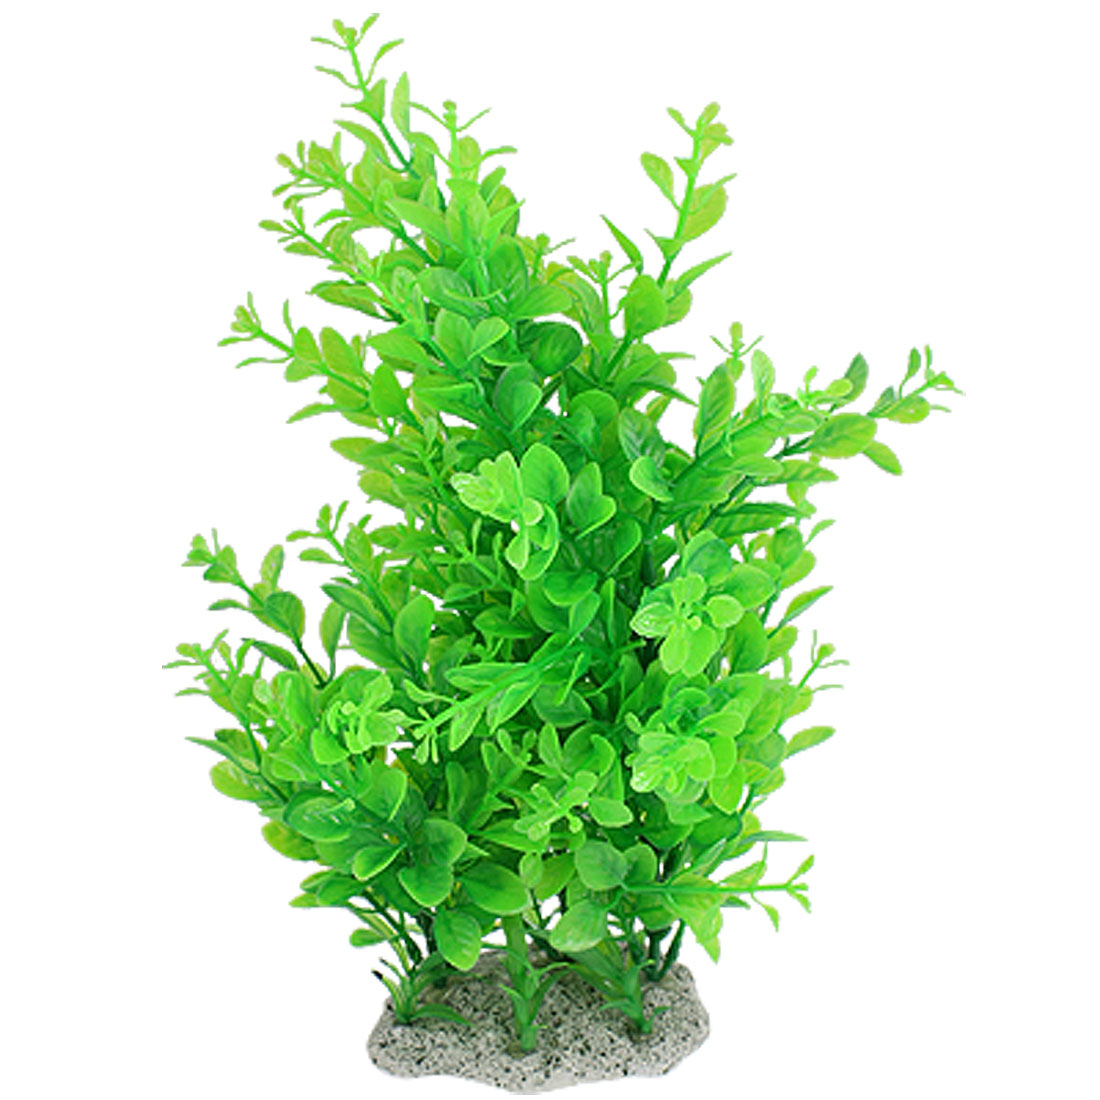 Fish Tank Aquarium Plastic Green Leaves Plants Ornament 12.6""